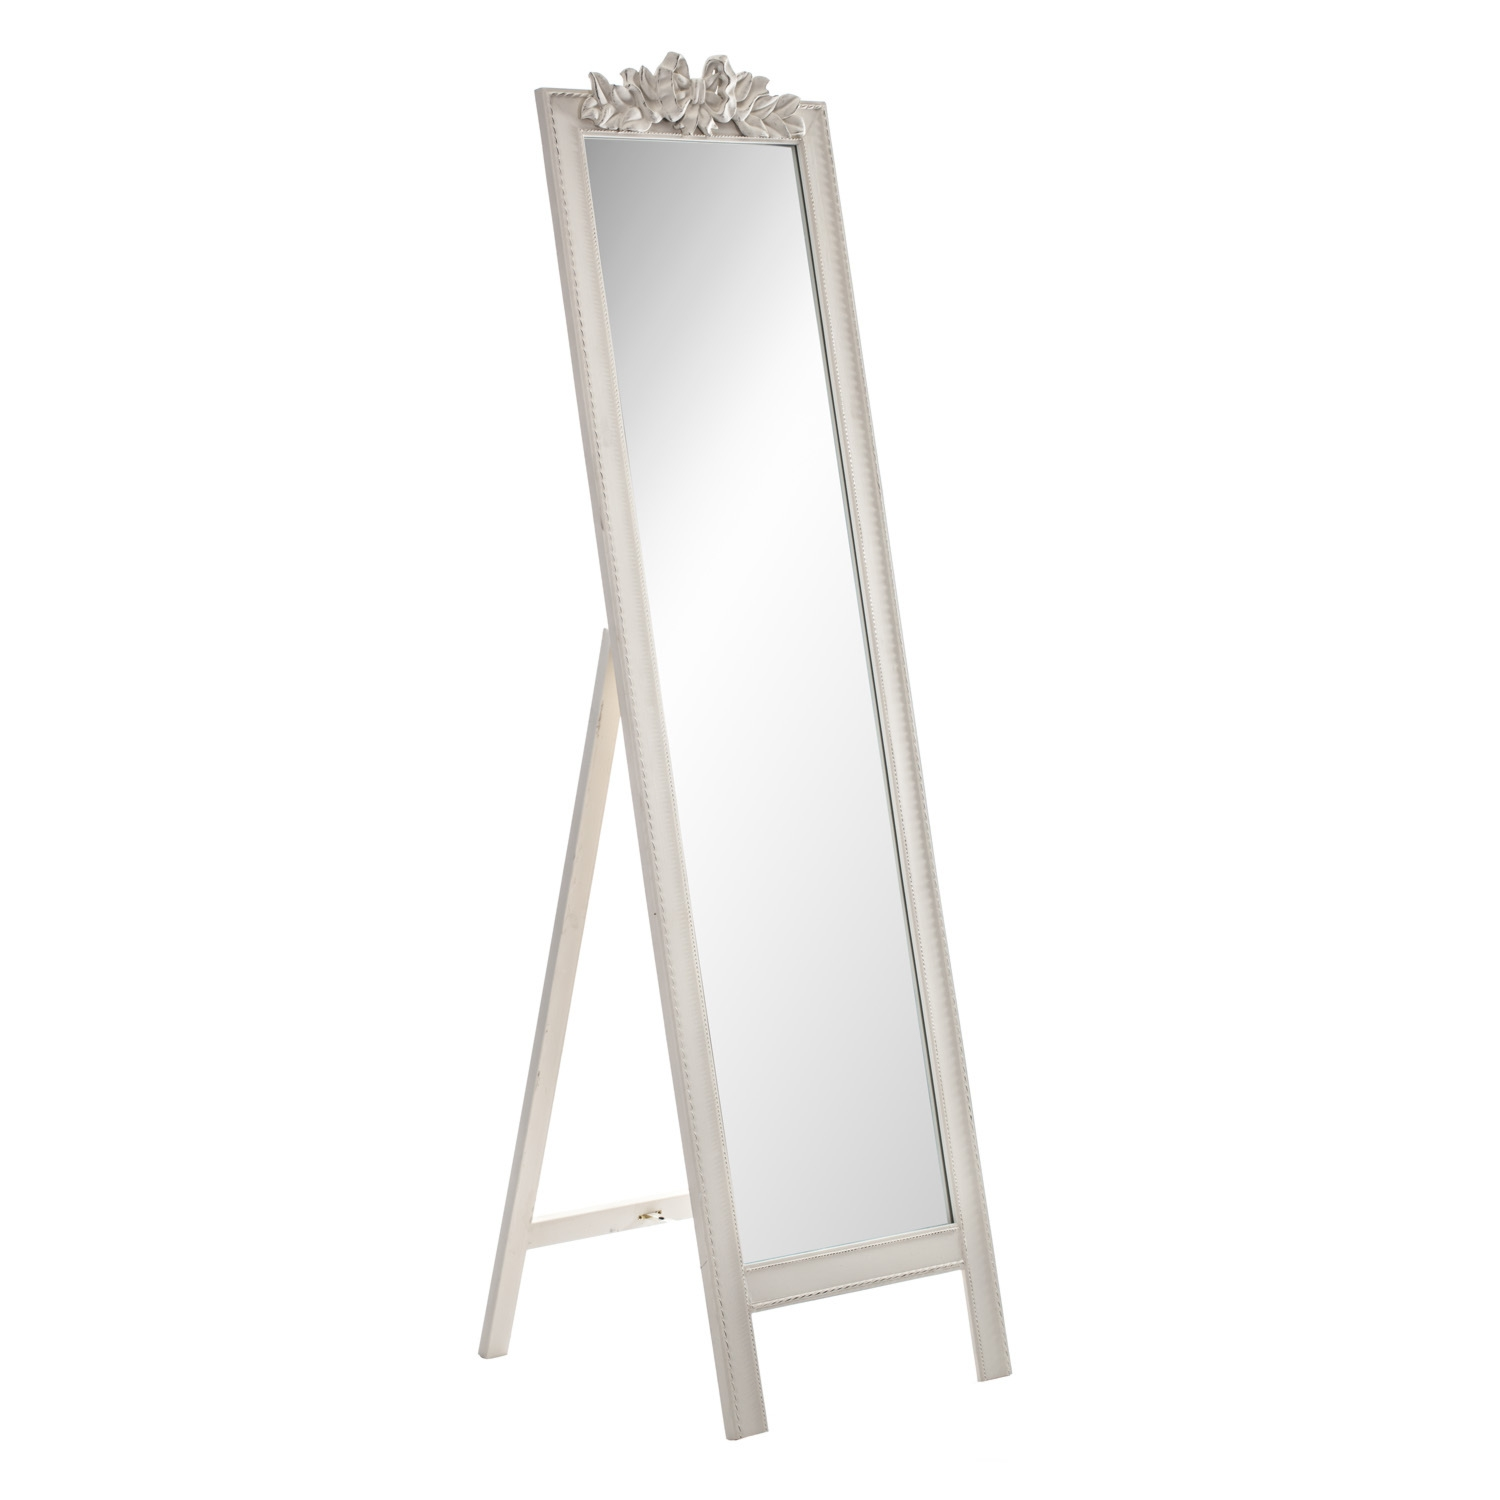 Full Length Floor Mirrors Large Free Standing Mirrors The Range Intended For Shabby Chic Free Standing Mirror (View 12 of 15)